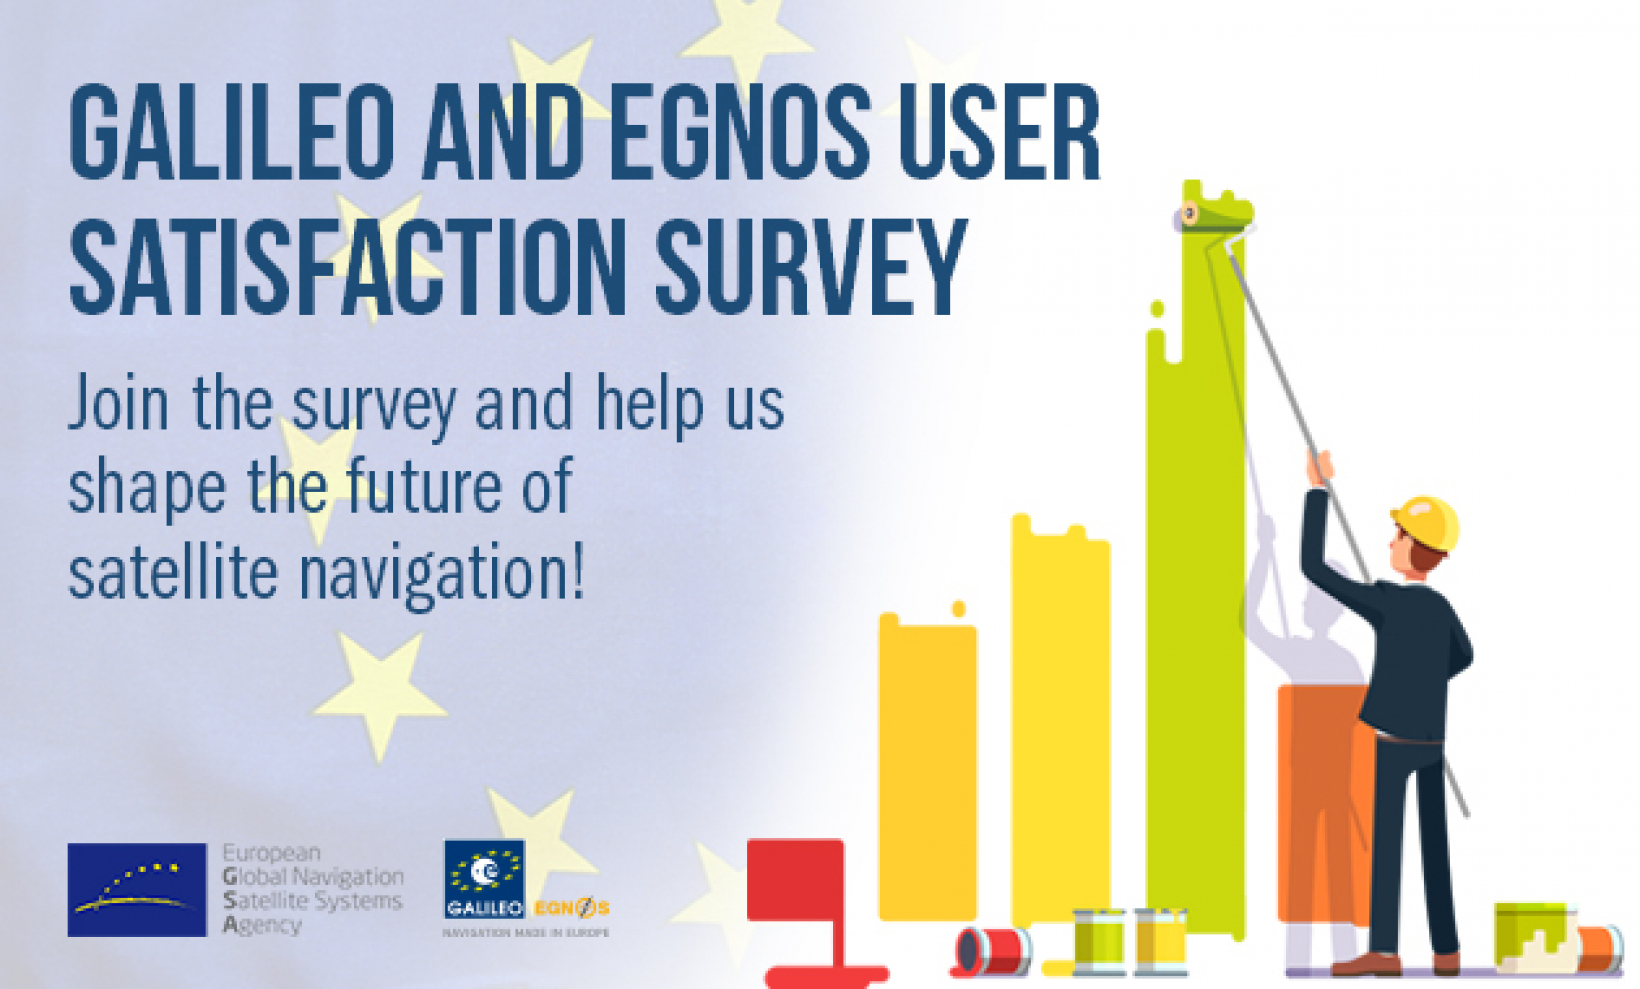 Help shape future evolutions of Galileo and EGNOS